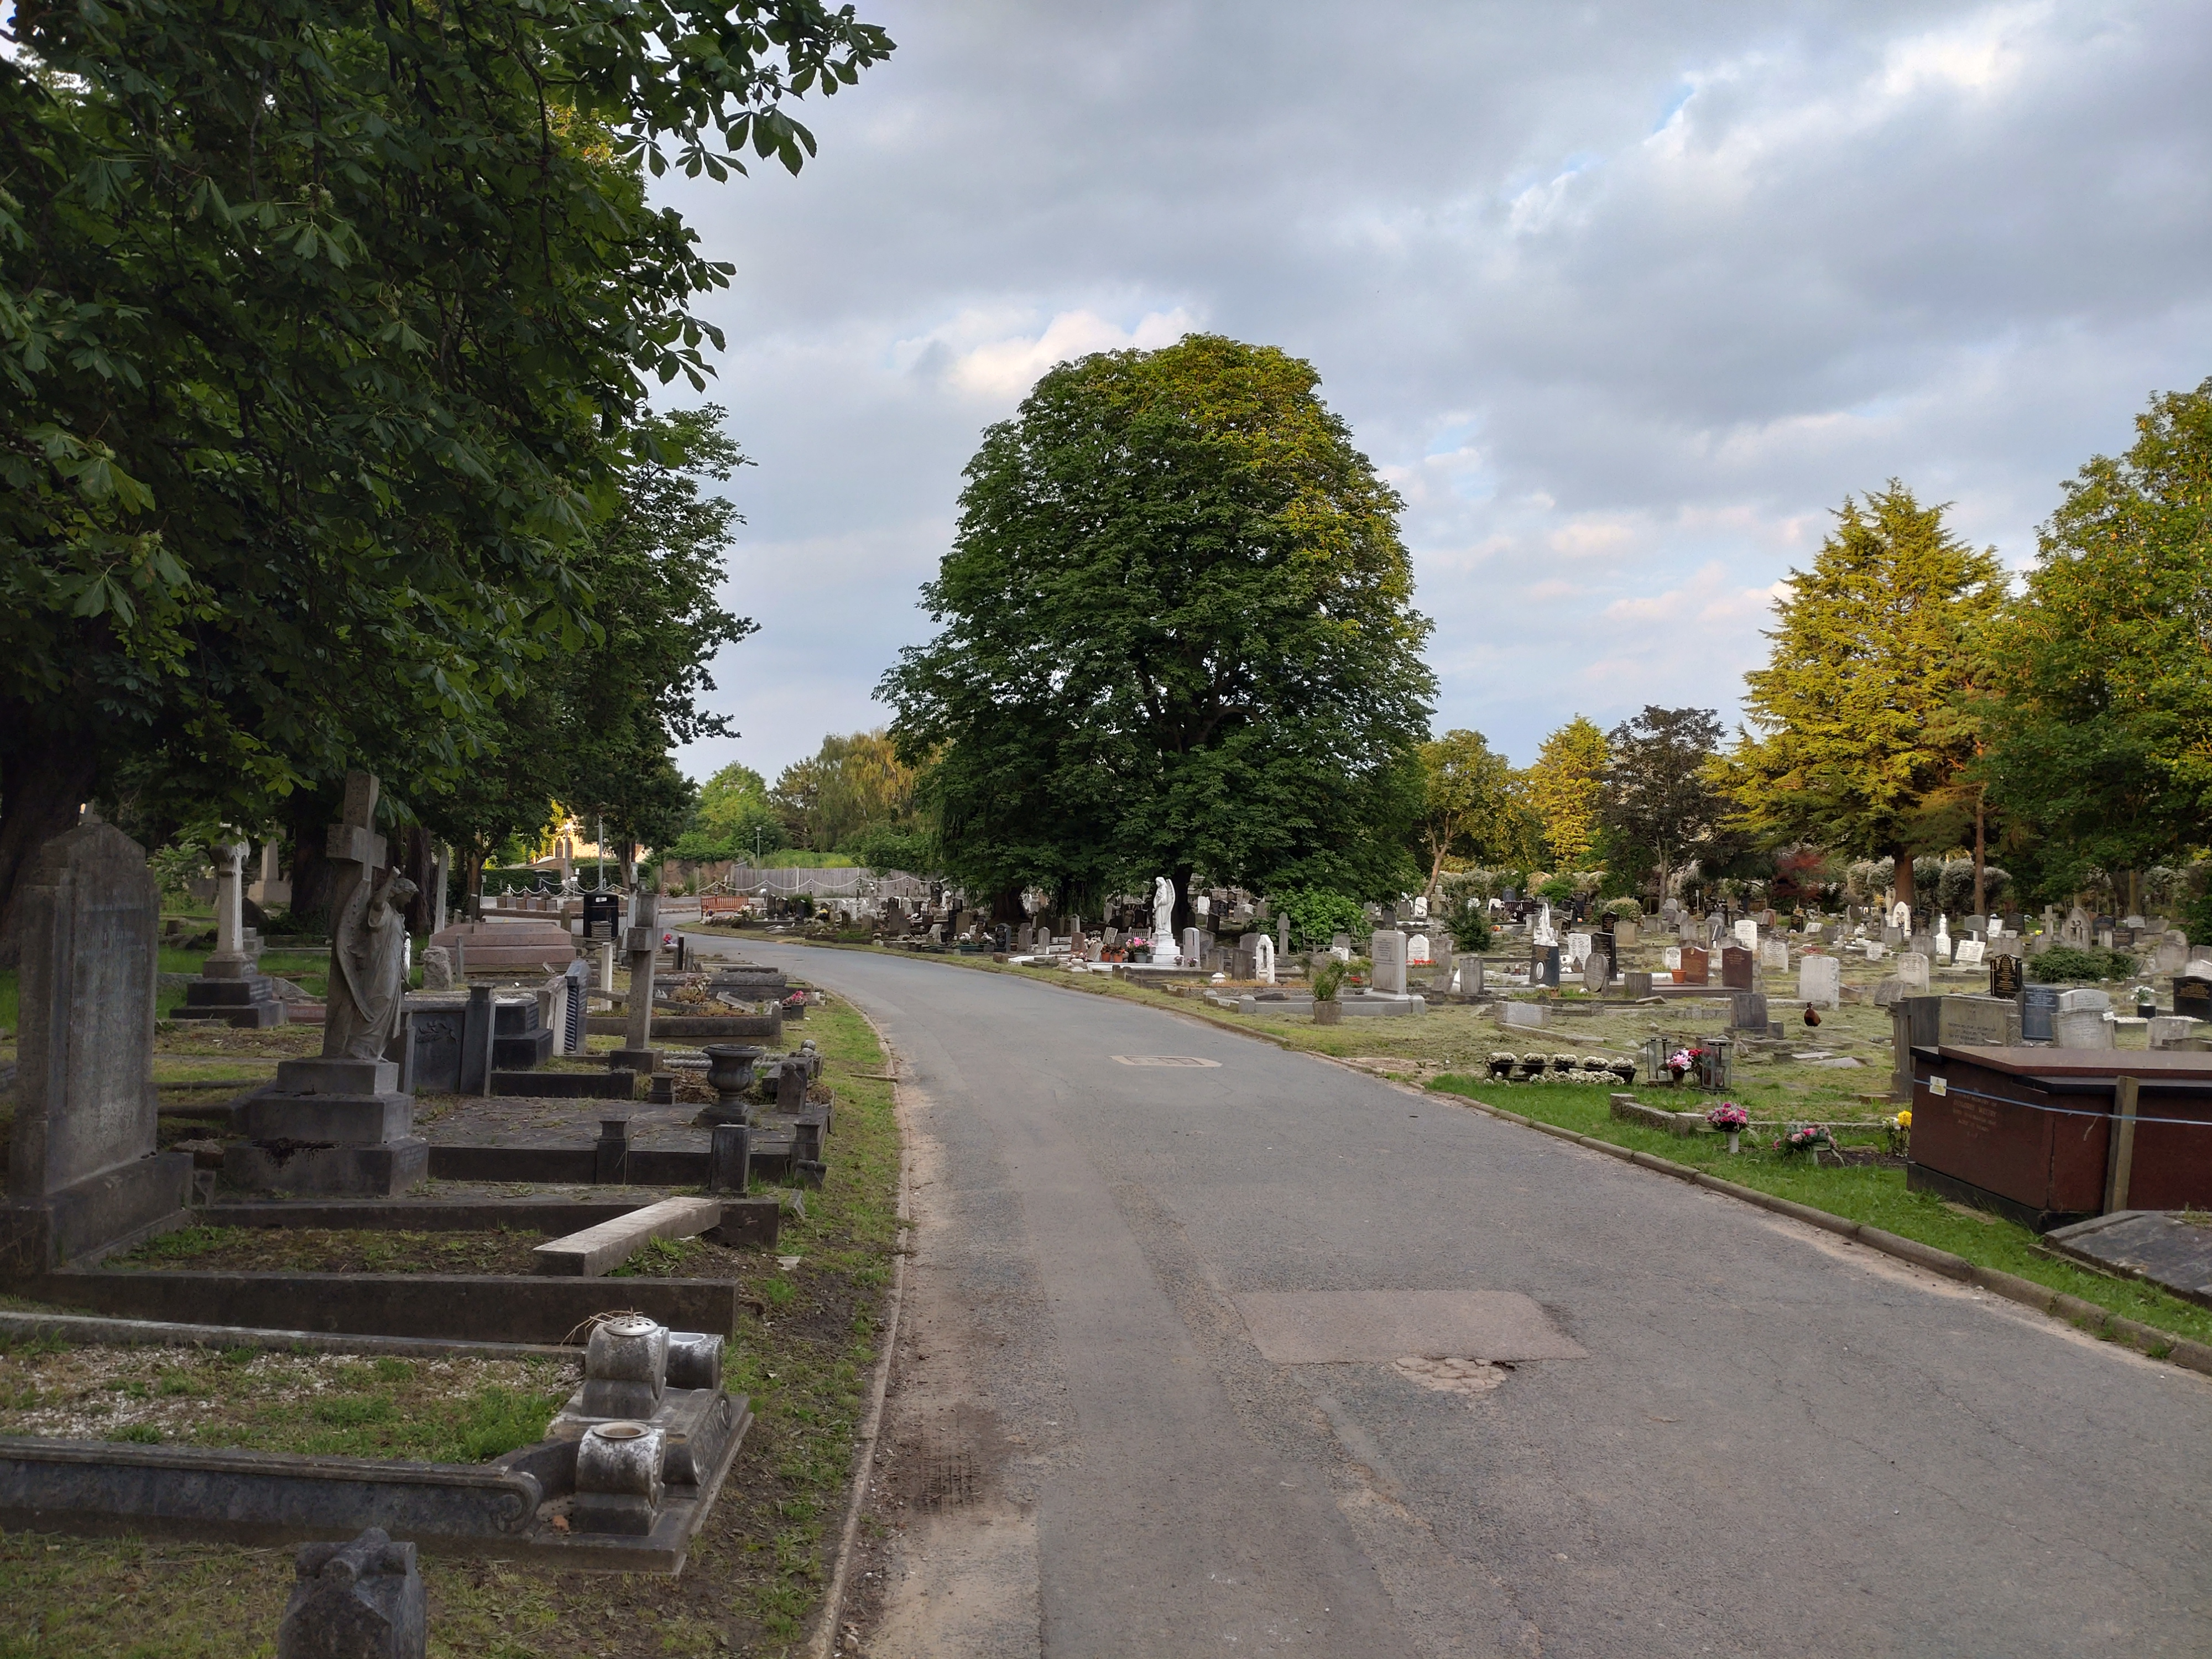 A graveyard shot on the Xperia 10 III